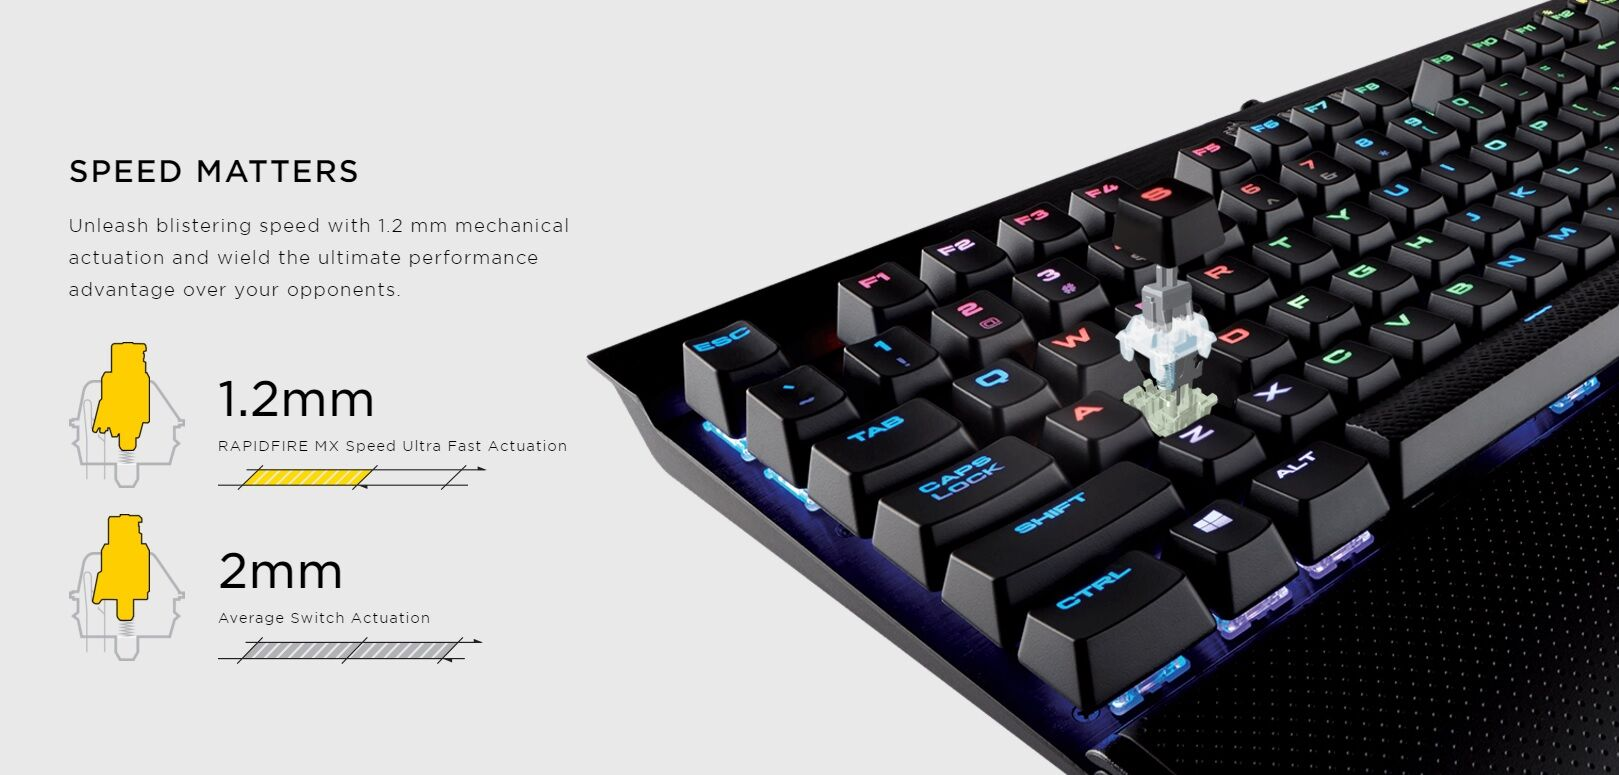 Corsair Rapidfire mechanical keyboards now official 24